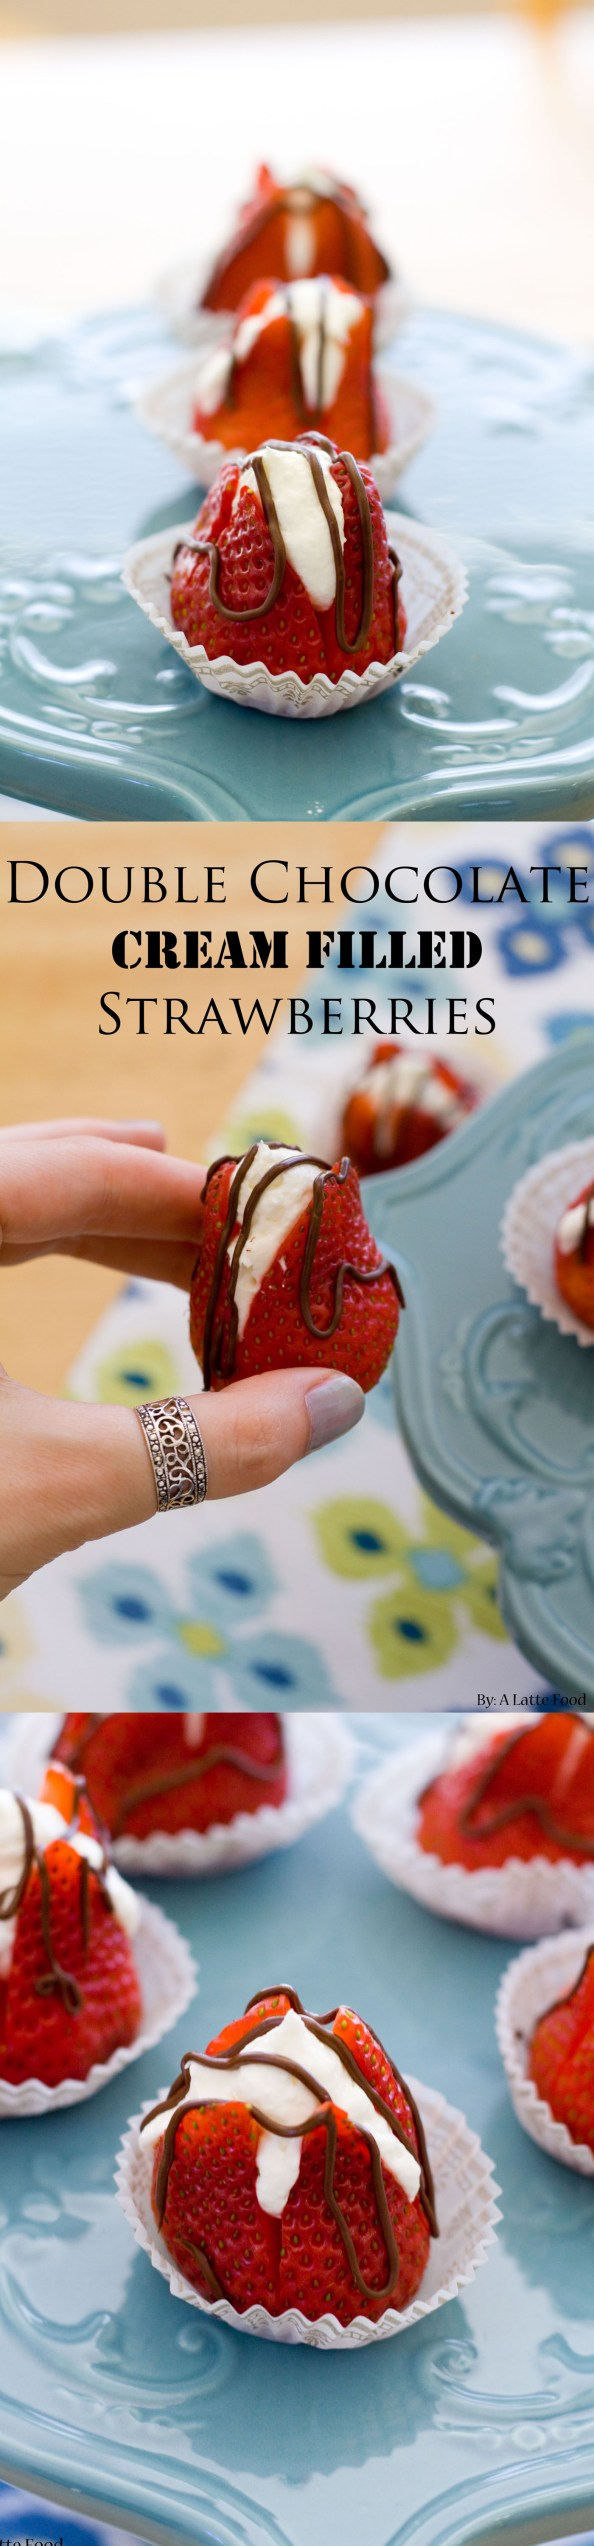 Double Chocolate Cream Filled Strawberries | A Latte Food